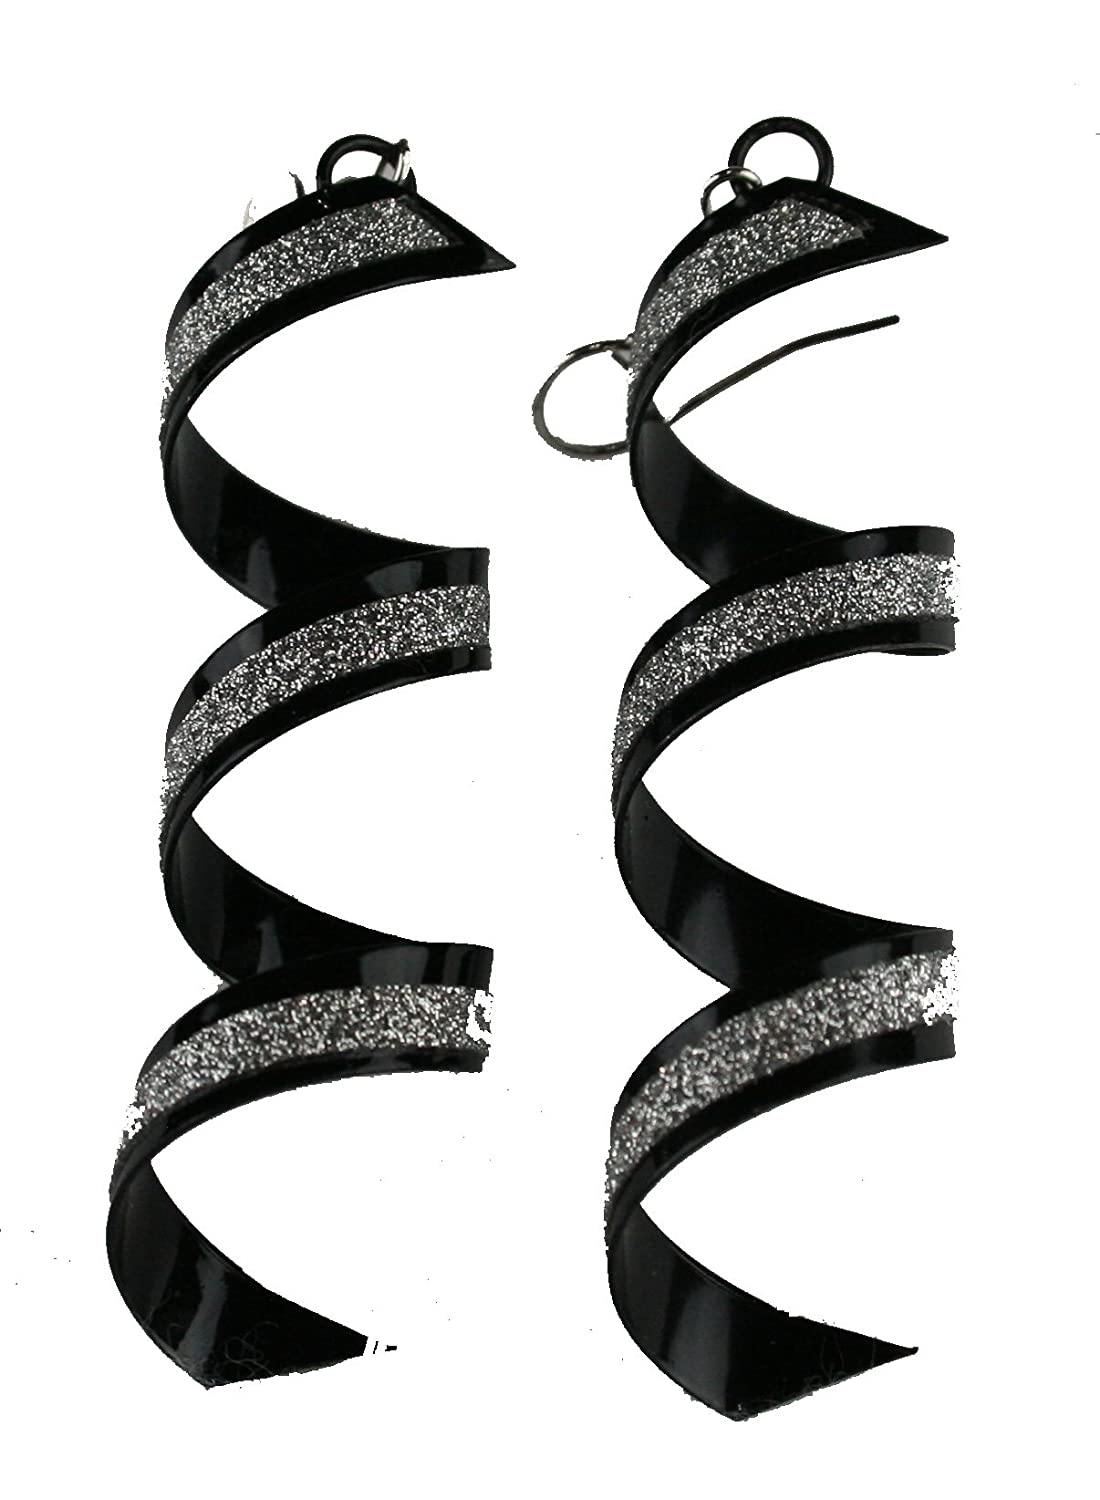 Twist Spiral Dangle Earrings in Silver Gold or Black For Women and Girls Sandar Fashion Jewelry New Collection